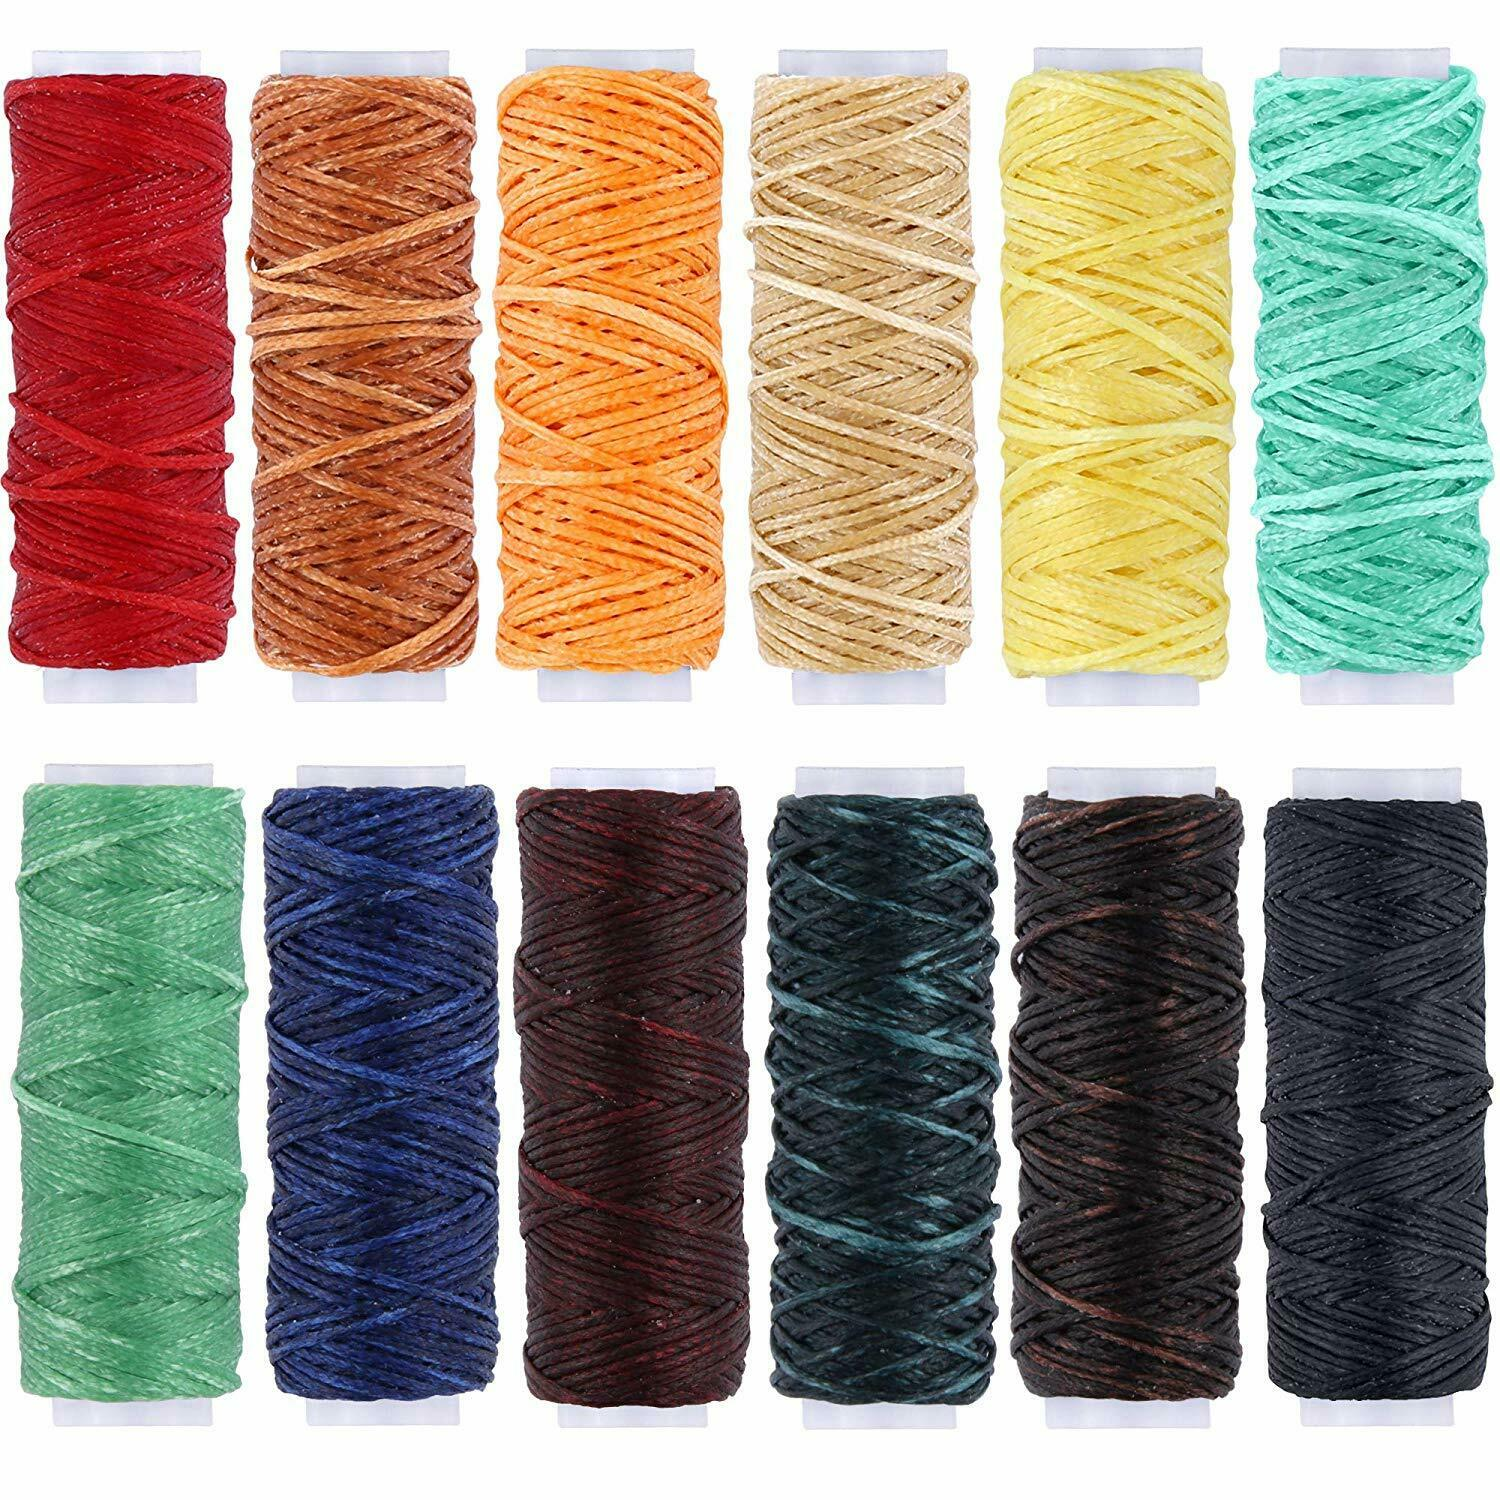 12 Colors 150D Leather Sewing Waxed Thread Cord for Leather Craft DIY 1mm Diame